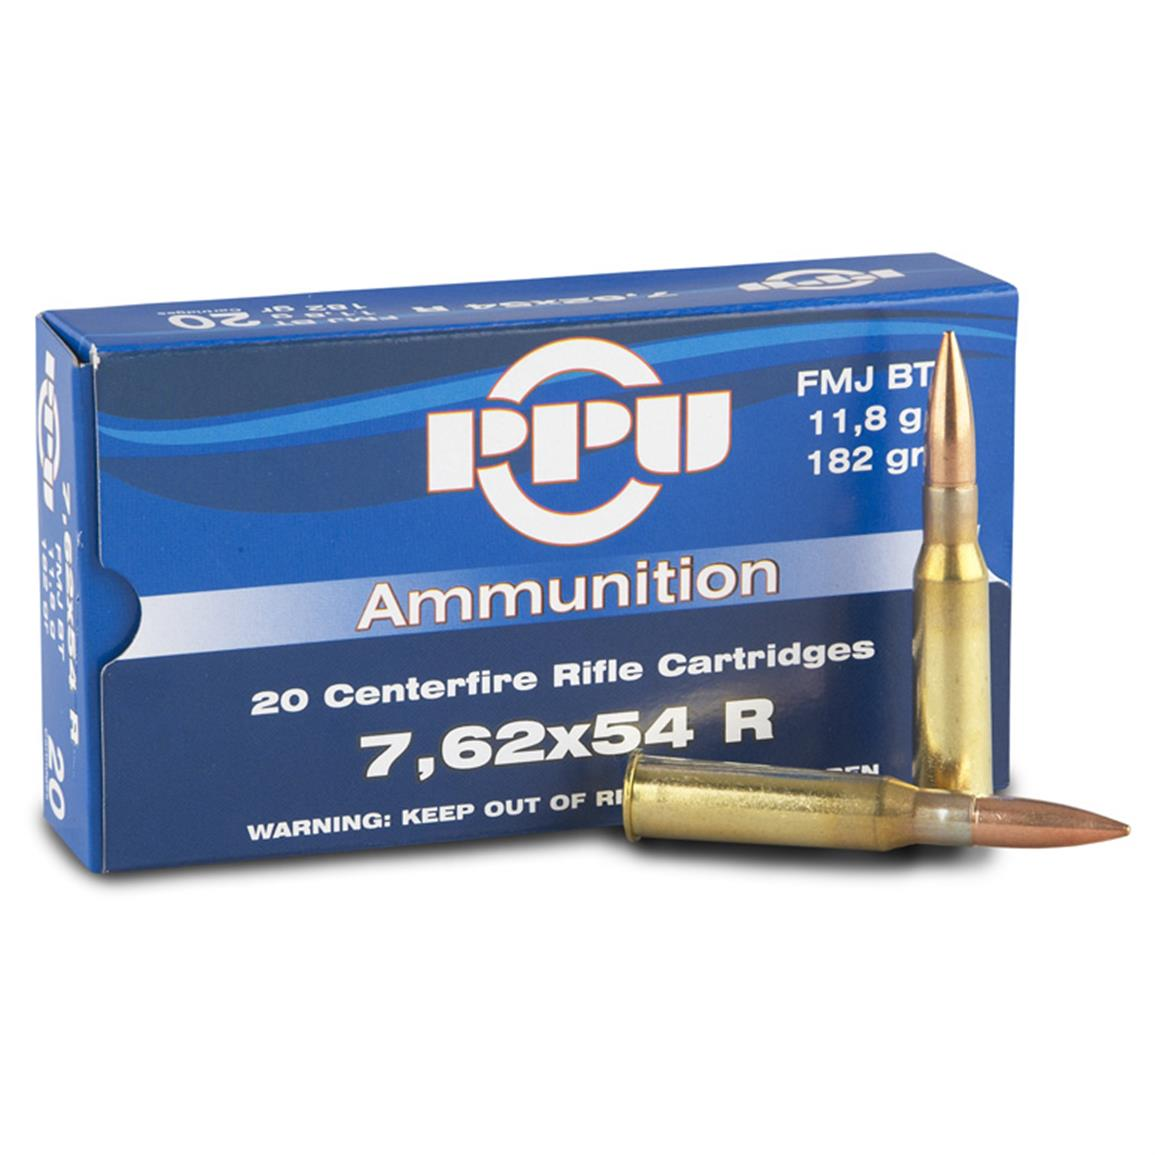 PPU 7.62x54R 182 Grain FMJ-BT 20 rounds (Box photoed is for illustrative purposes only, offer is for PPU 7.62x54R)